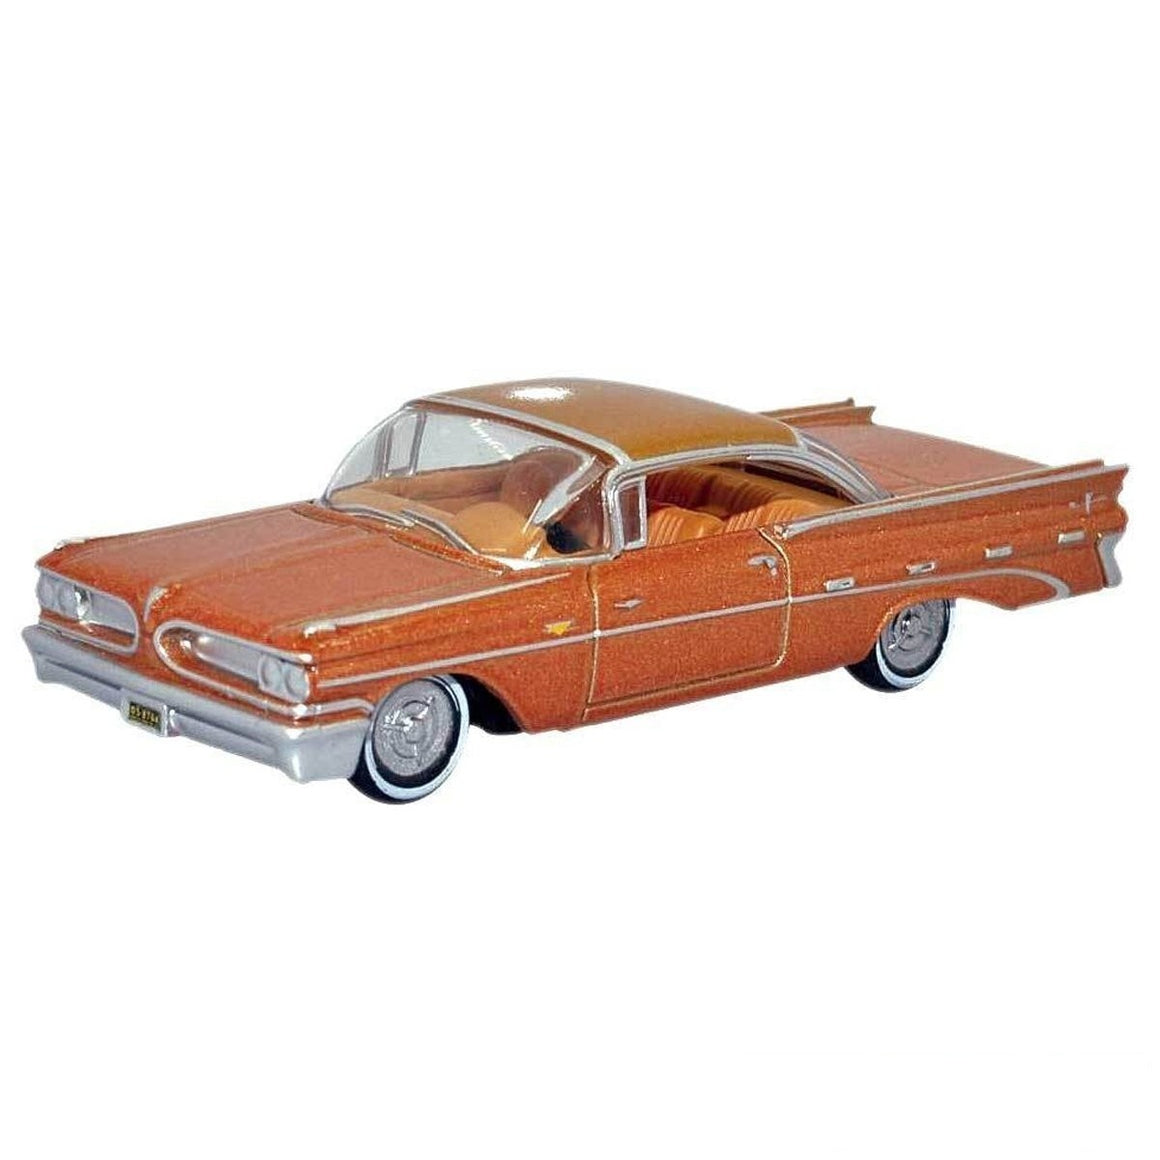 HO Scale: 1959 Pontiac Bonneville - Copper